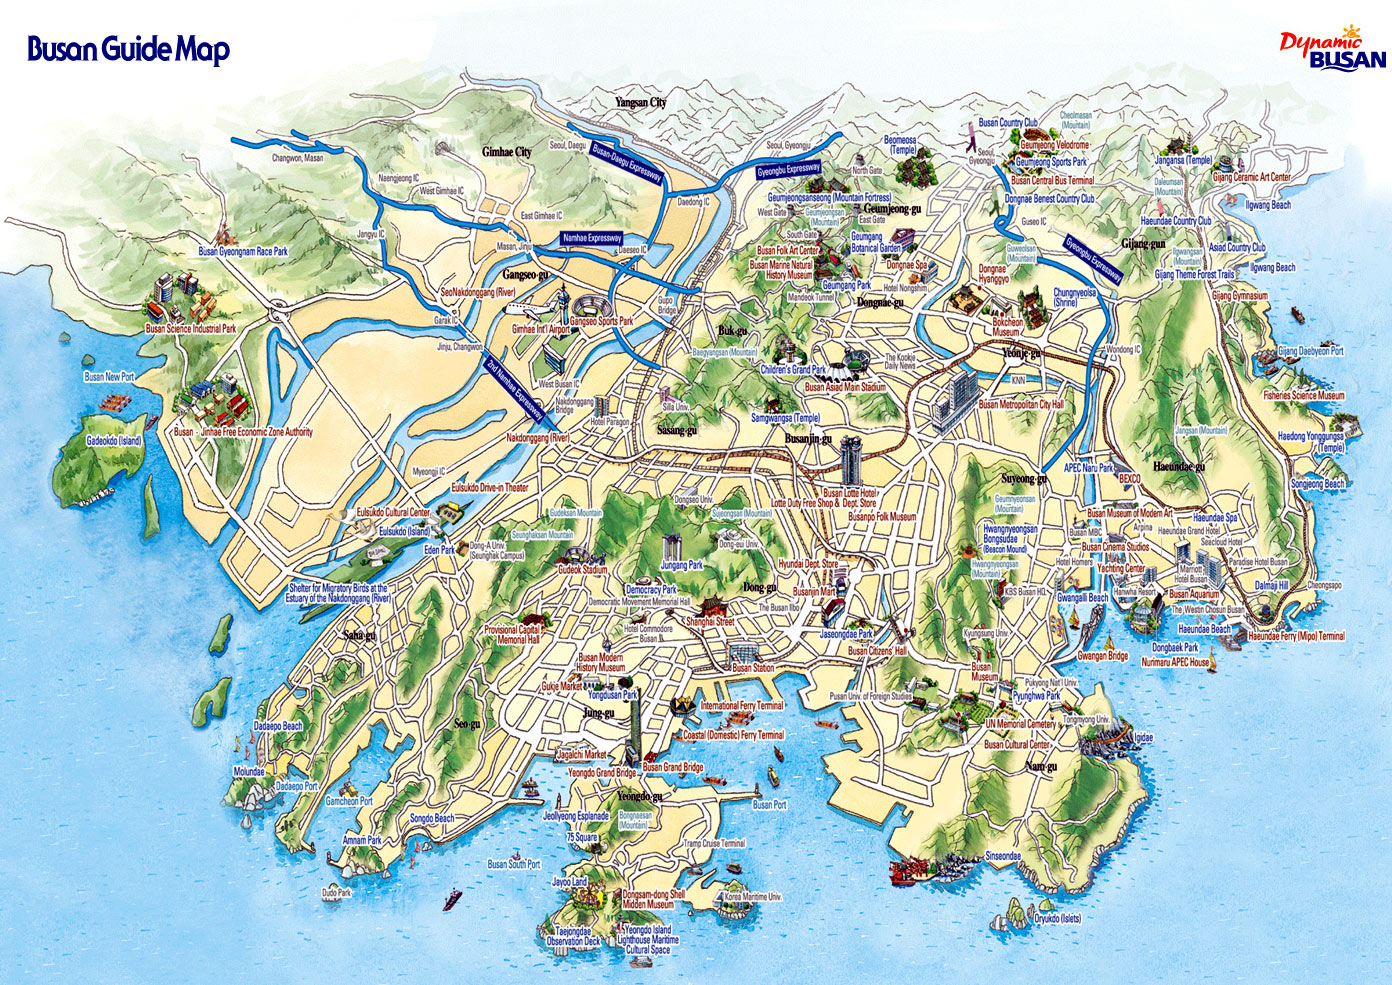 venice water bus map with Busan City Tourist Map on Grand Venezia Greater Noida furthermore Italy Tour Package Lake  o Venice Tuscany additionally Maps Korea And Korean Cities also El Vaporetto additionally St Petersburg Tourist Map.